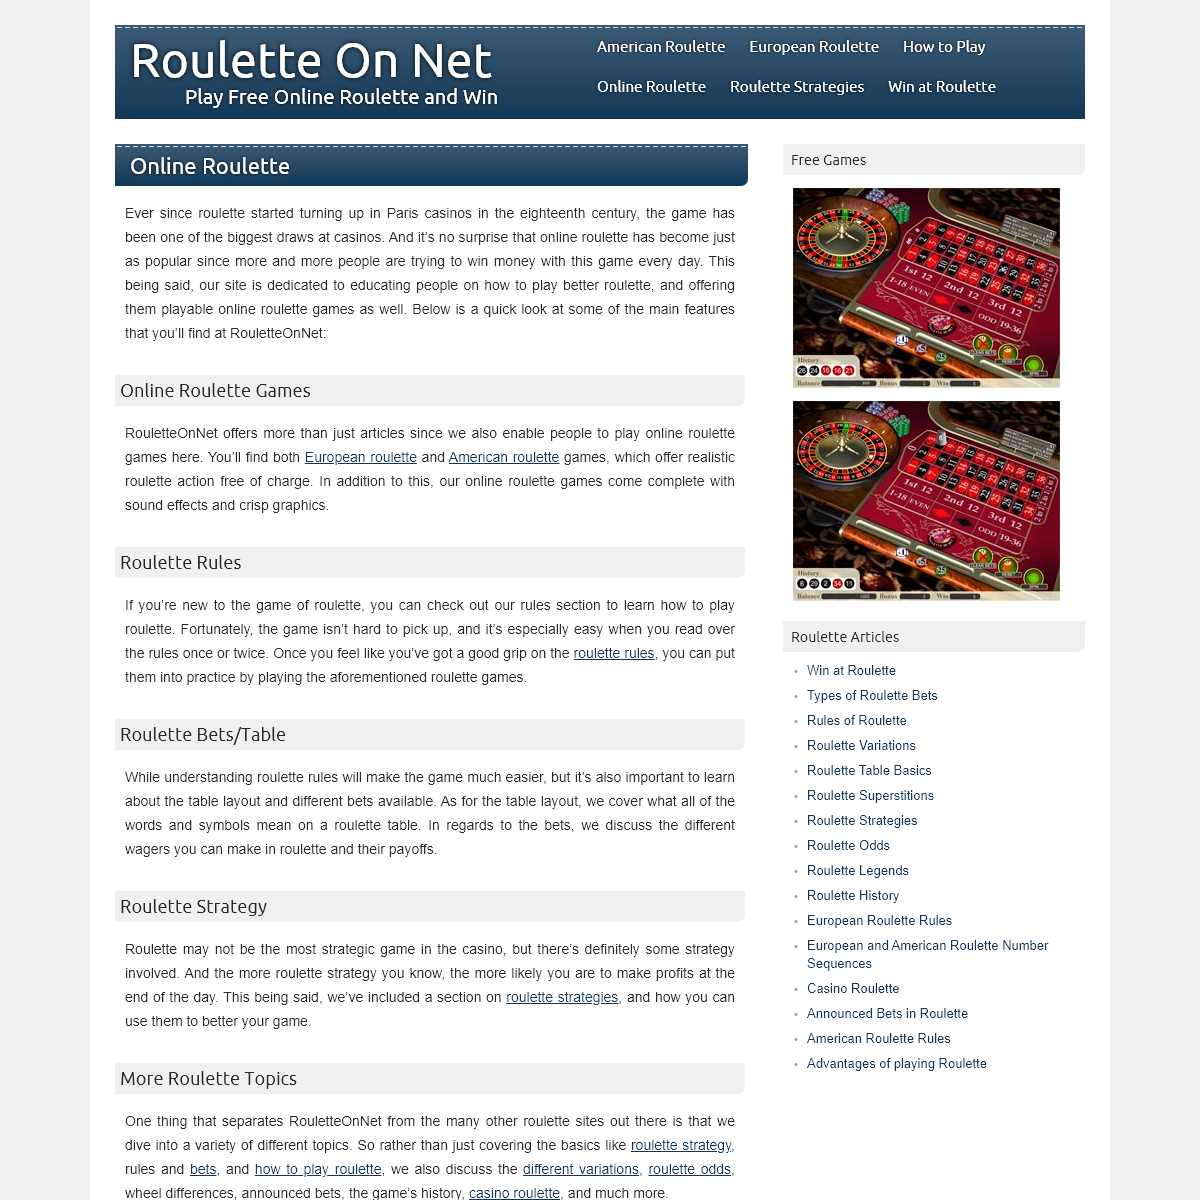 Roulette On Net - Play Free Online Roulette and Win